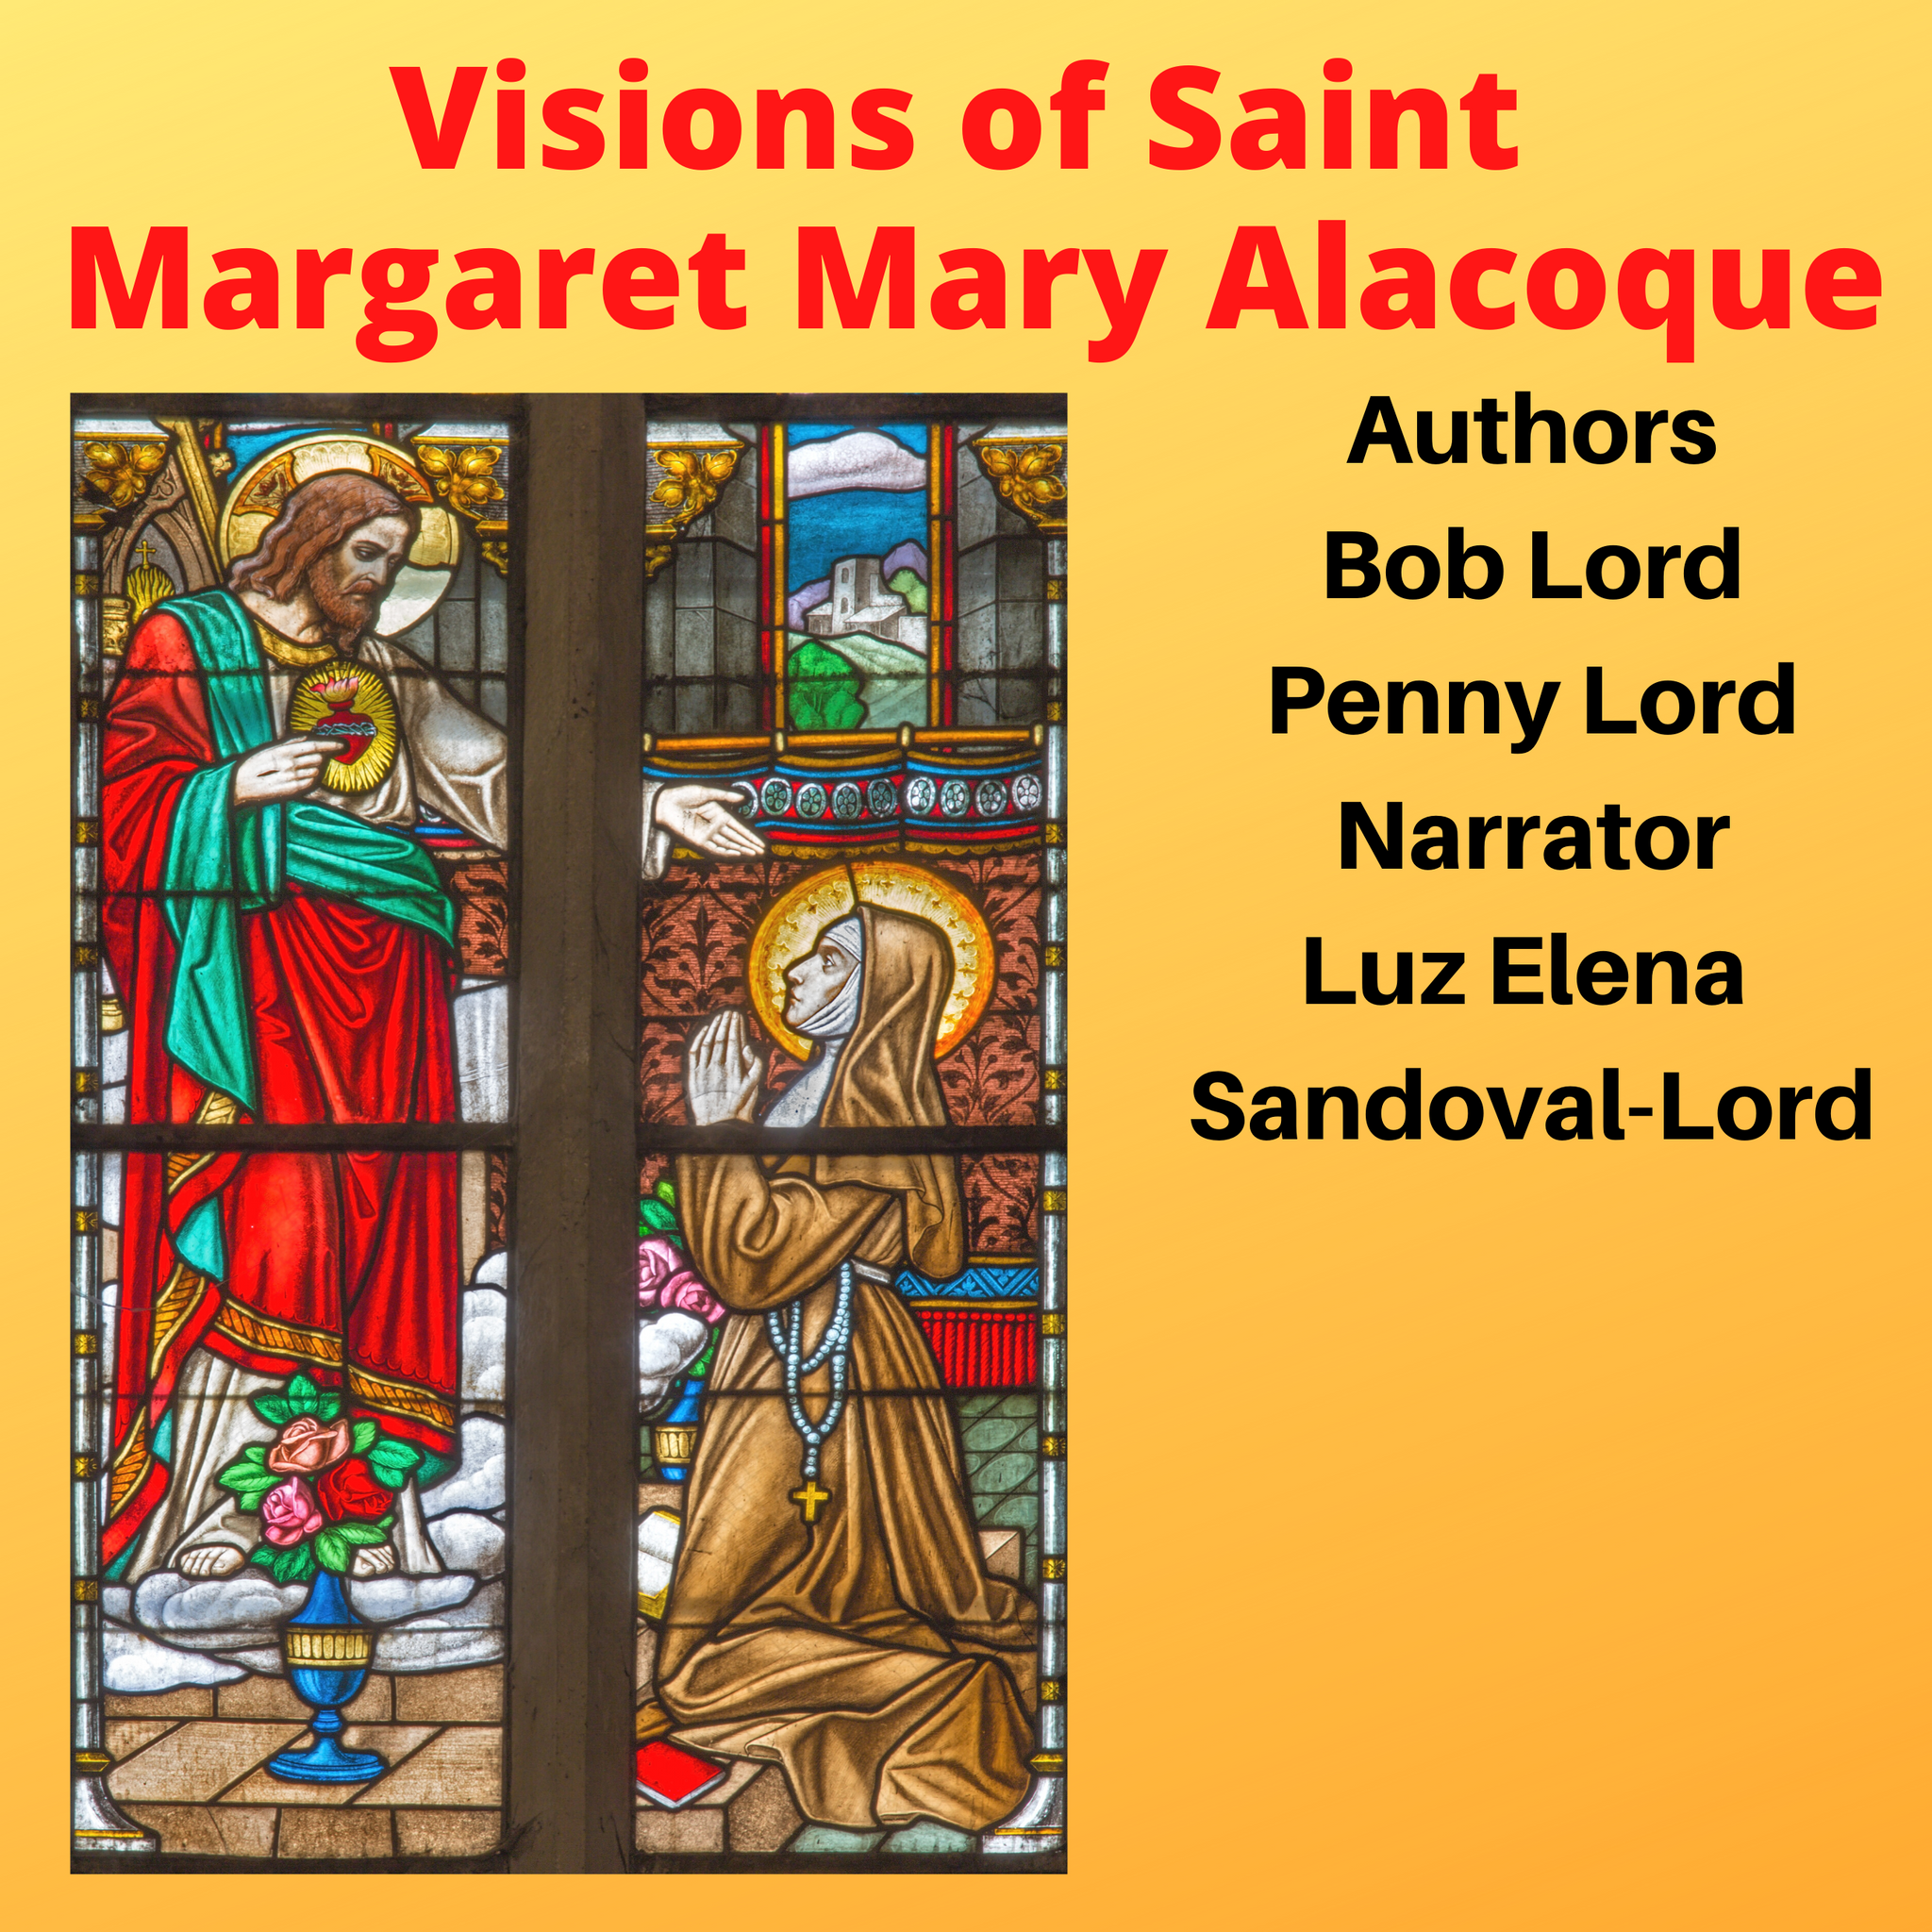 Visions of Saint Margaret Mary Alacoque Audiobook - Bob and Penny Lord